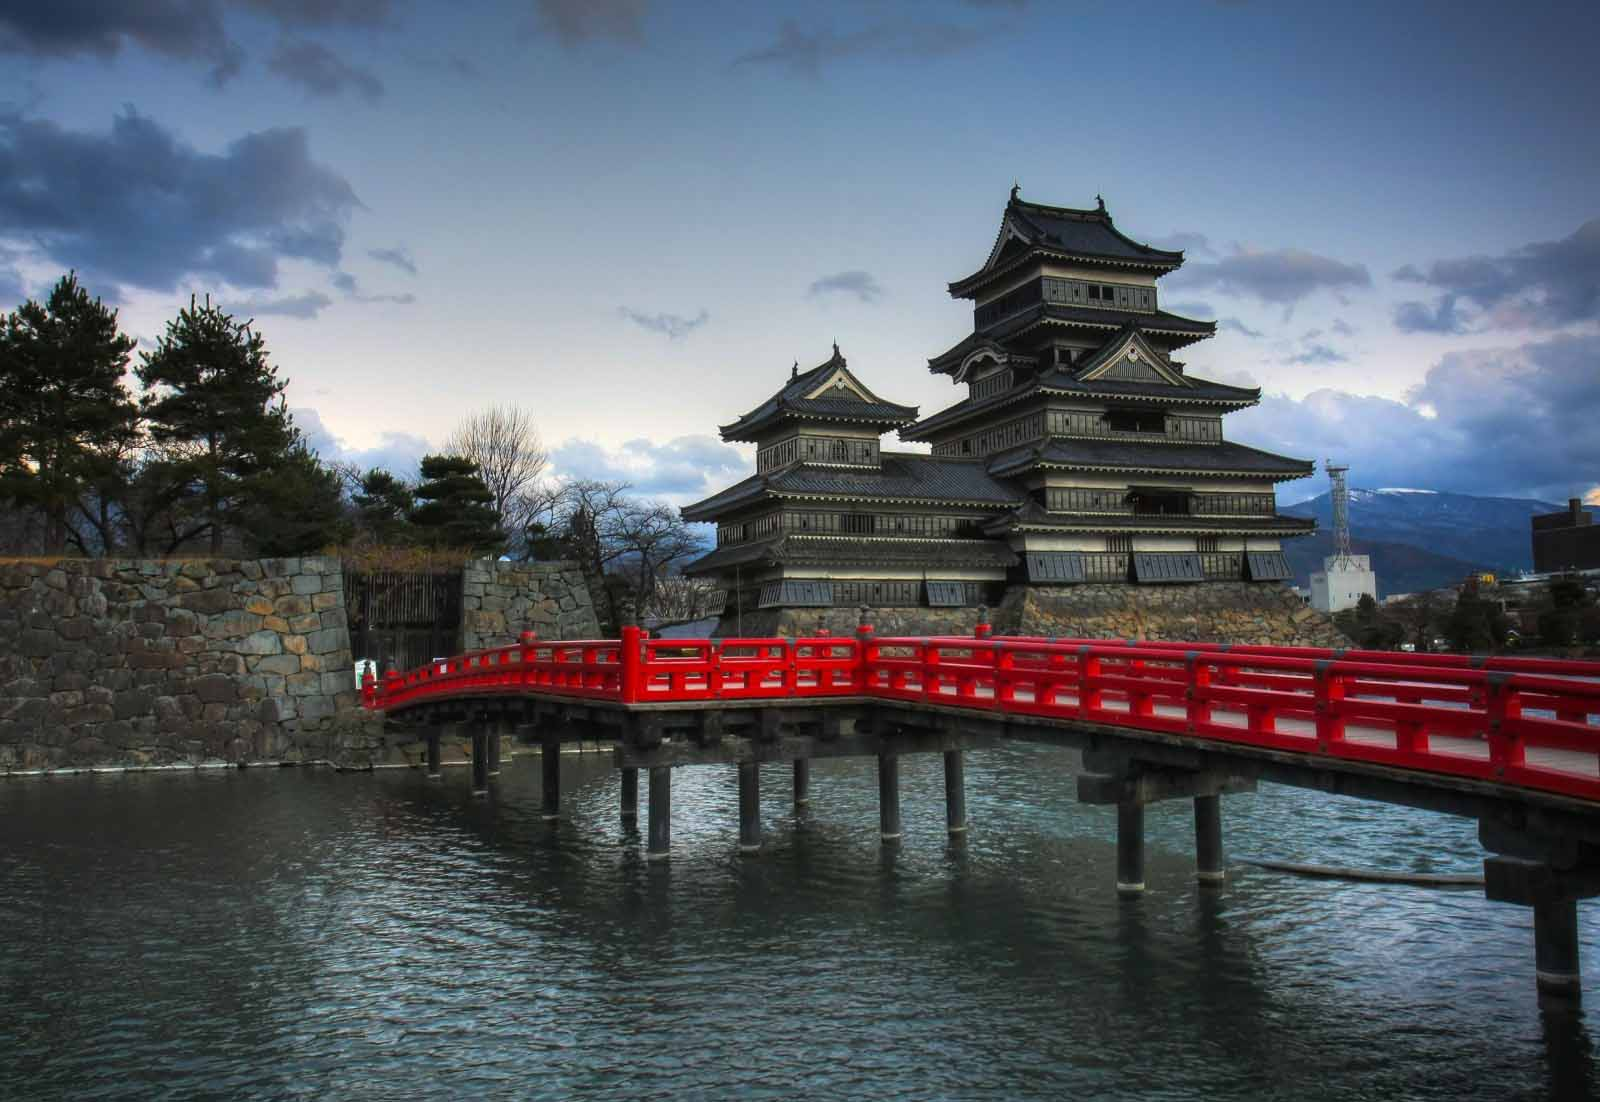 Most Amazing Castles In Japan - PRE-TEND Be curious.